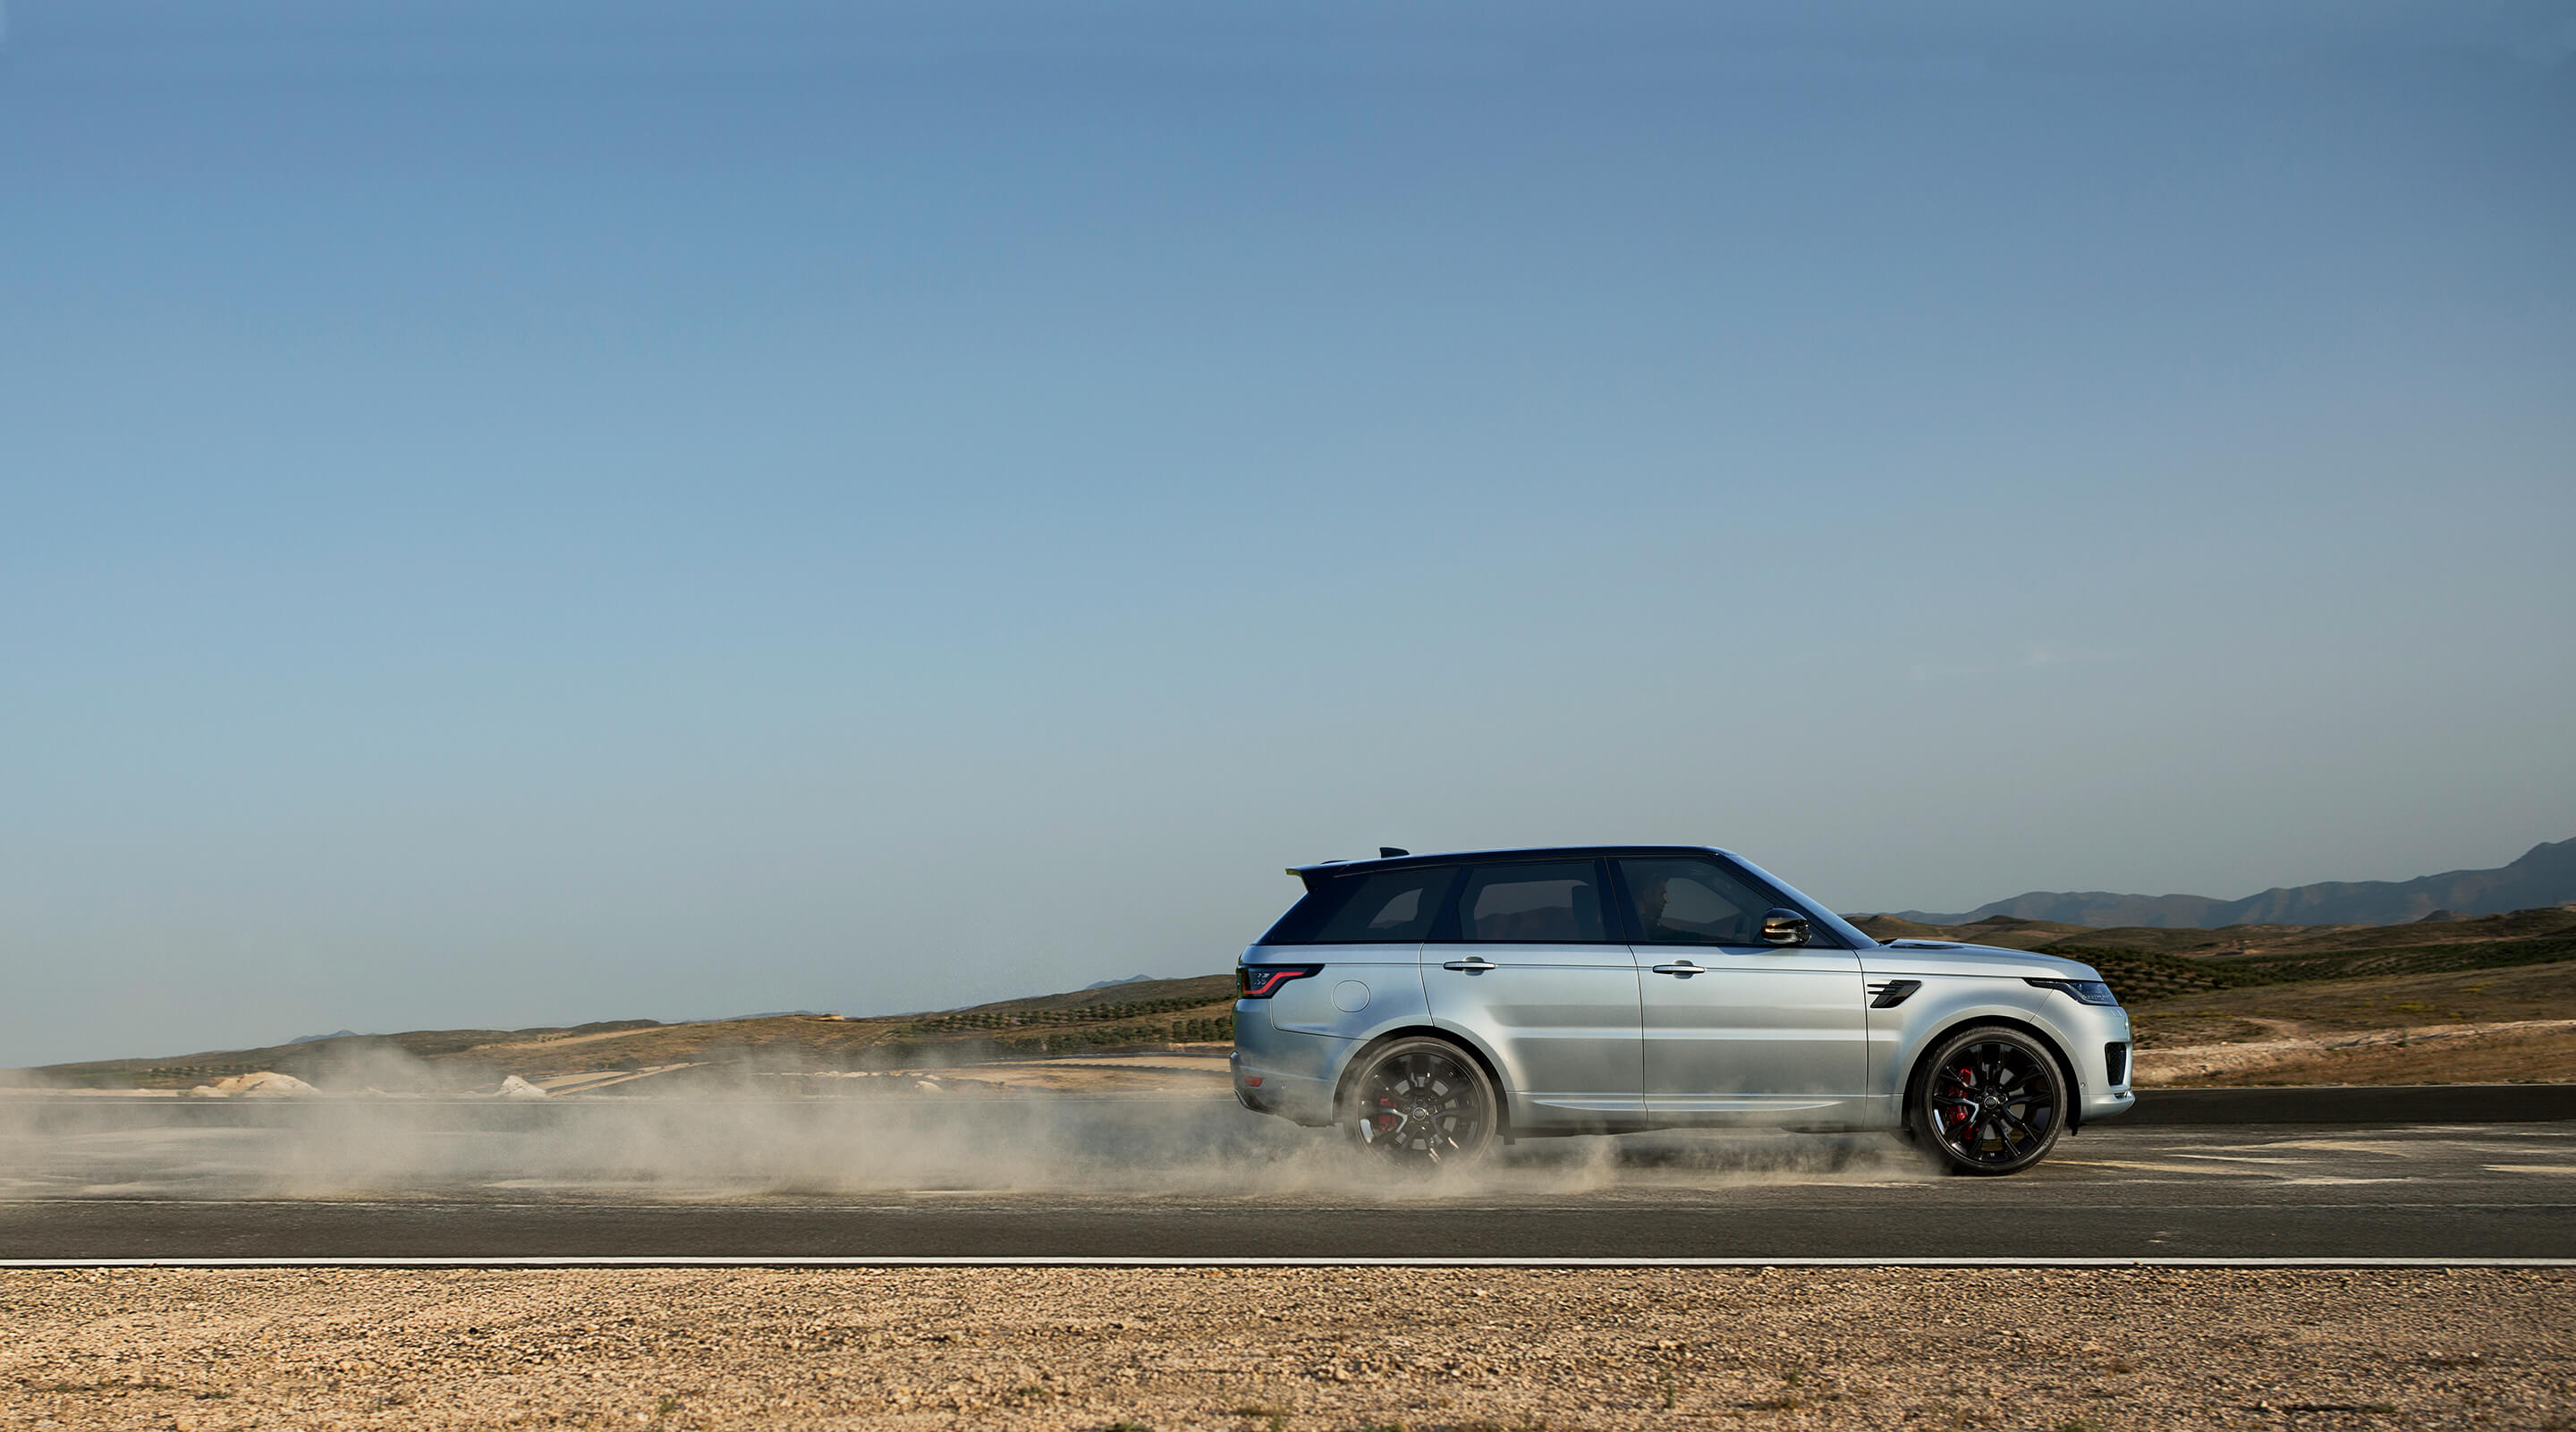 Announcing new arrivals to the fleet: Range Rover Sport and Range Rover Velar